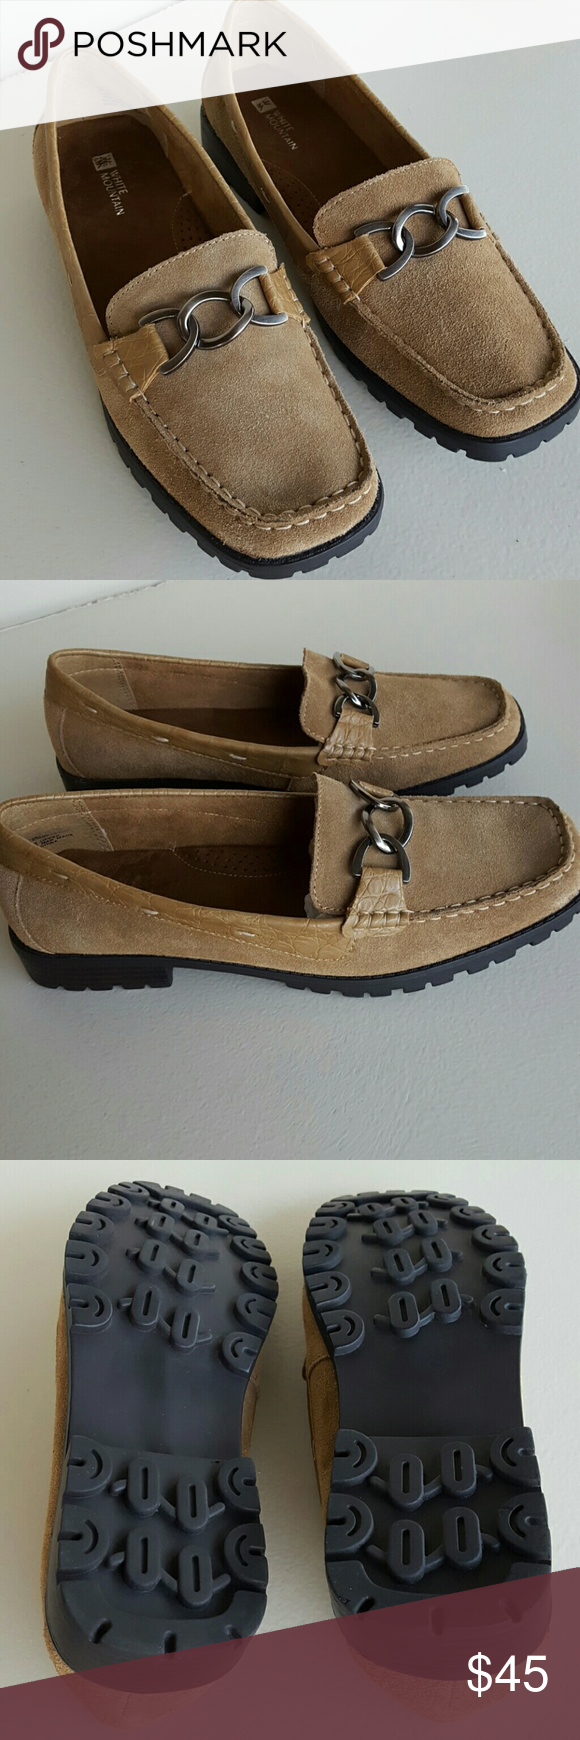 3f1d7d8710dc1c New White Mountain Loafers NWOT White Mountain Mercedes Tan Leather Suede  Silver Hardware No trades Please White Mountain Shoes Flats   Loafers